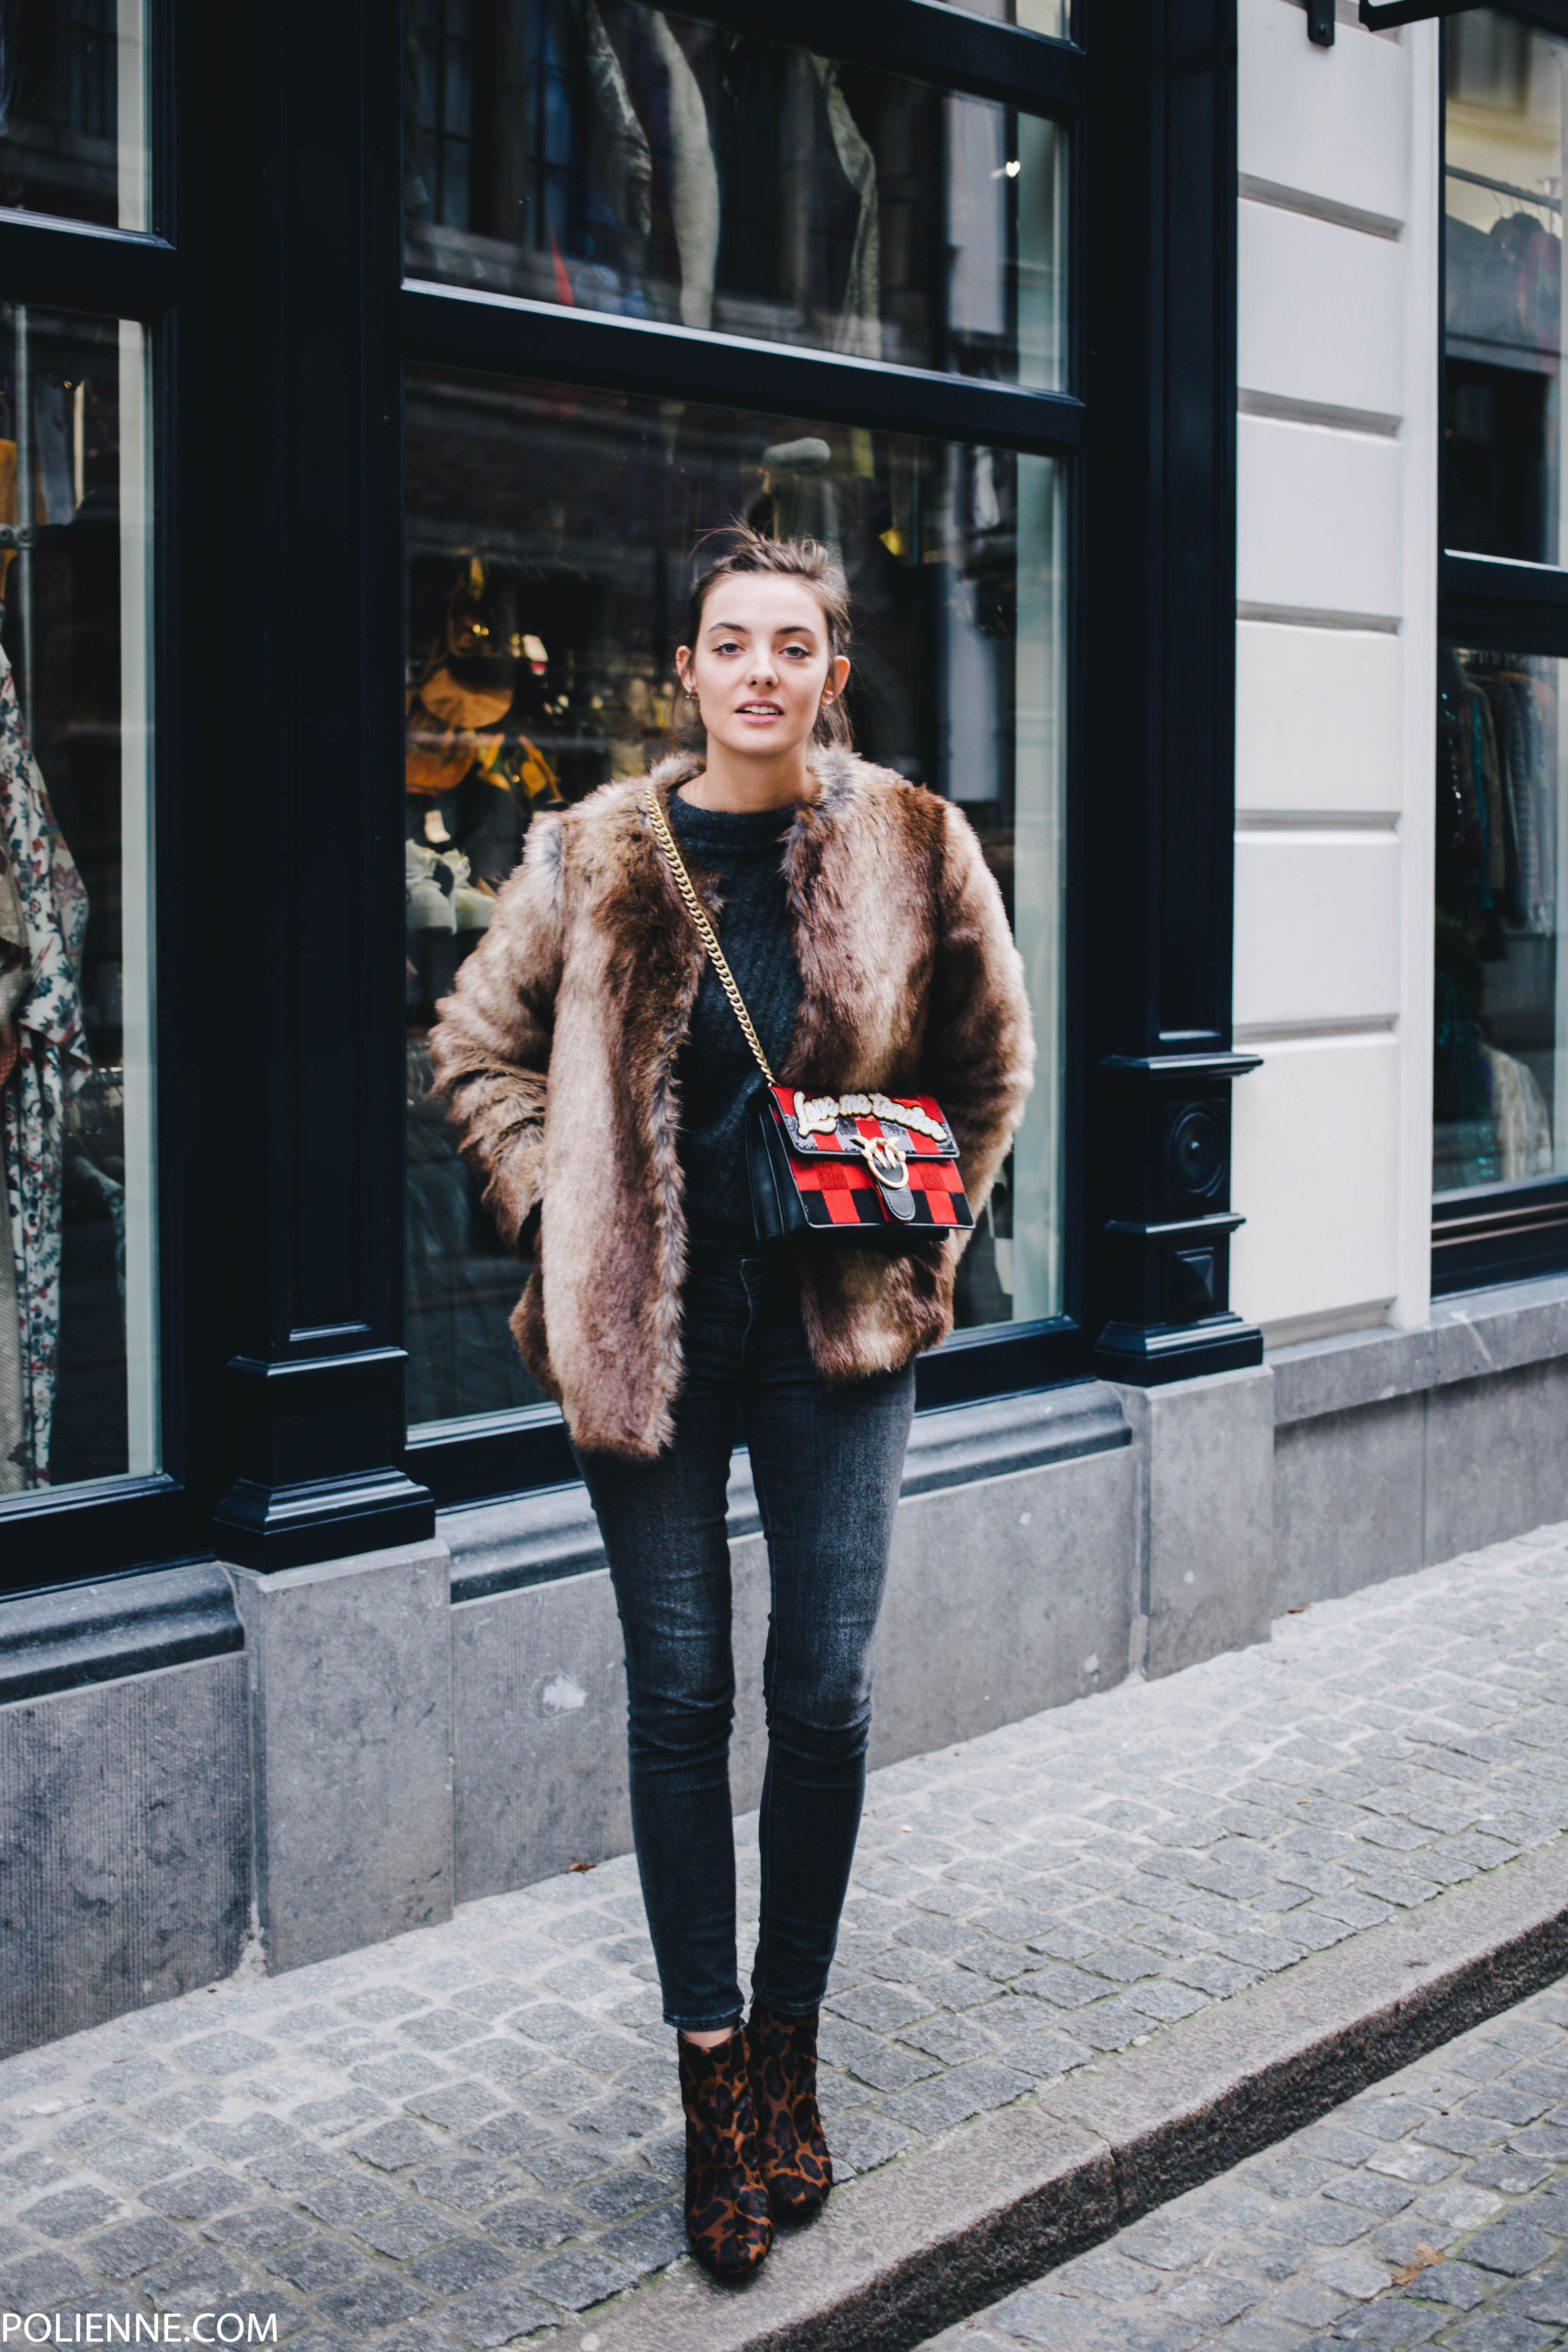 Tags french fashion la redoute secrets to french style style - Polienne By Paulien Riemis Wearing A La Redoute Faux Fur Pinko Love Bag